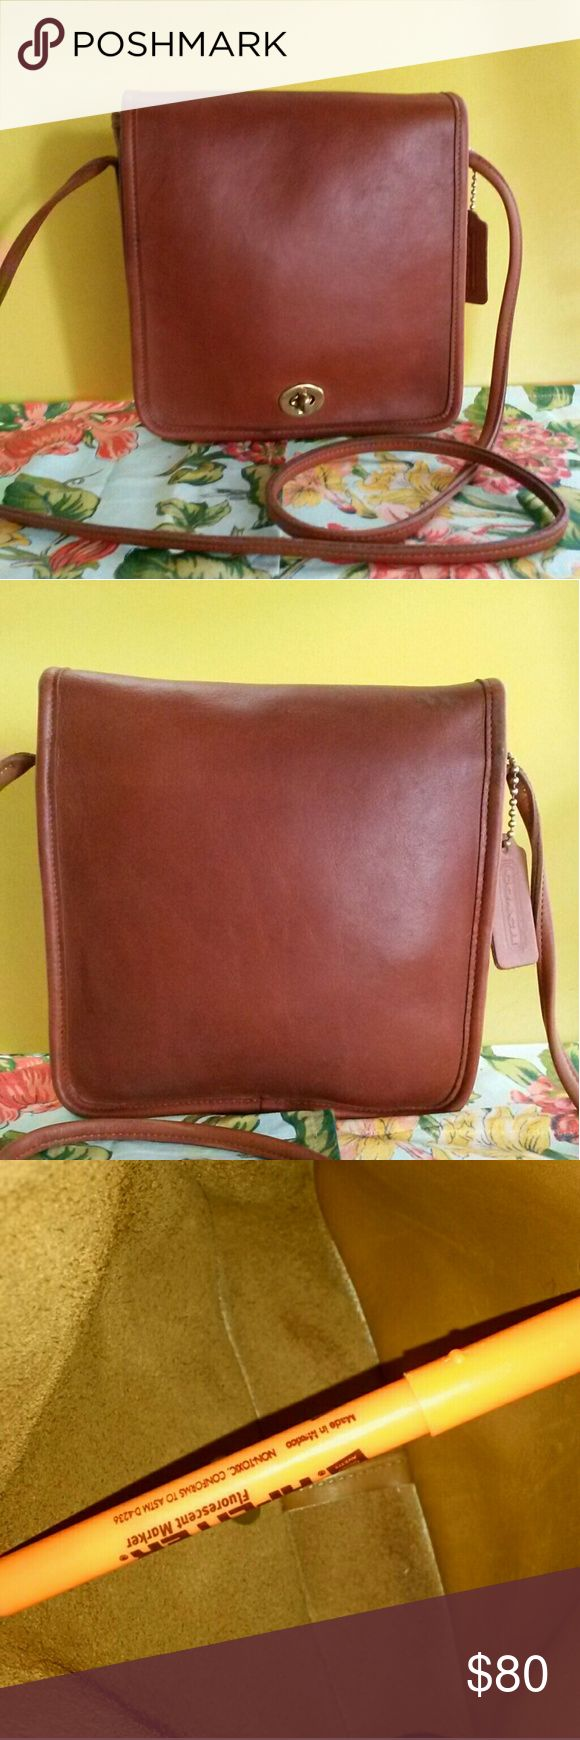 COACH VINTAGE COMPACT POUCH 1980's This Gorgeous deep Cinnamon color is sure to please, very eye catching in Color/classic look.Only flaw on entire bag, are marks across top of back, as flap folds over. Doesn't show when wearing., and the marks are small in appearance, see pic# 7. Marks appear more pronounced w my flash. No Scuffs or stains anywhere else inside or out. Piping is perfect! This bag is very vtg and other than mentioned top spots is in great Vtg condition! Purchasing Vtg bags…